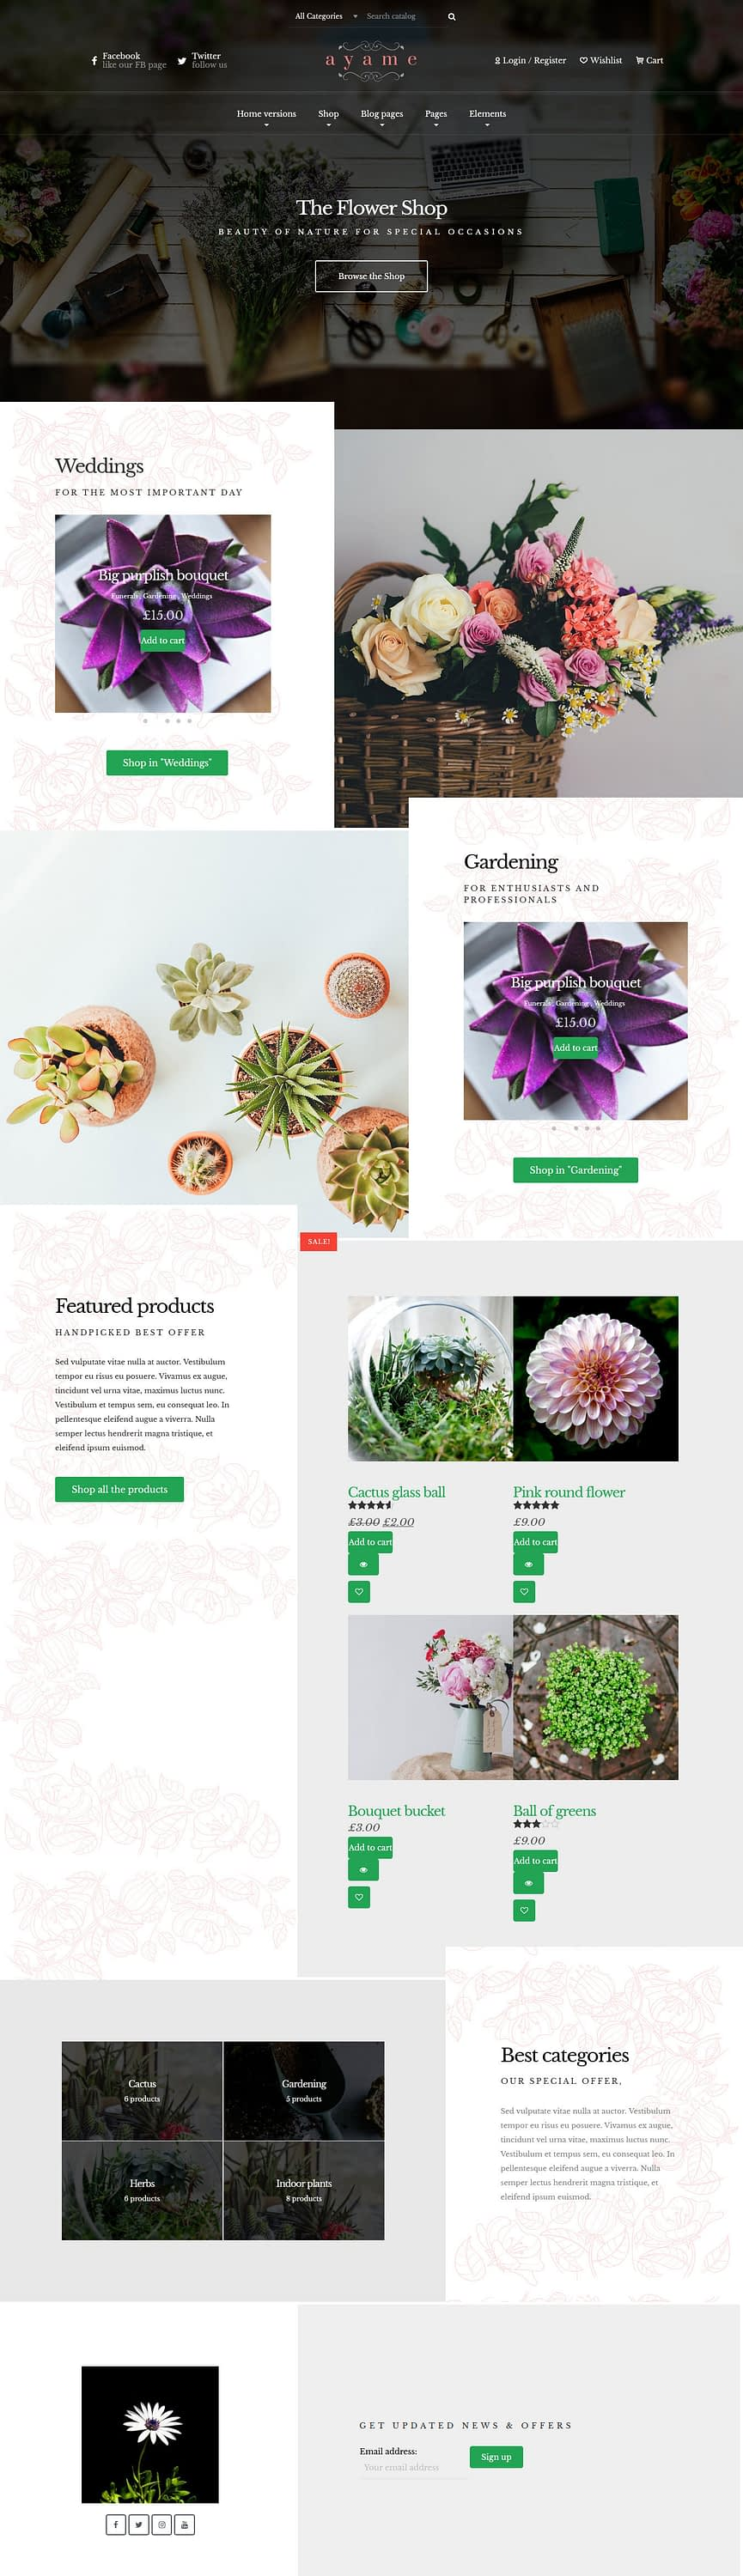 ayame best premium florist floriculture wordpress theme 1 - 10+ Best Premium Florist and Floriculture WordPress Themes